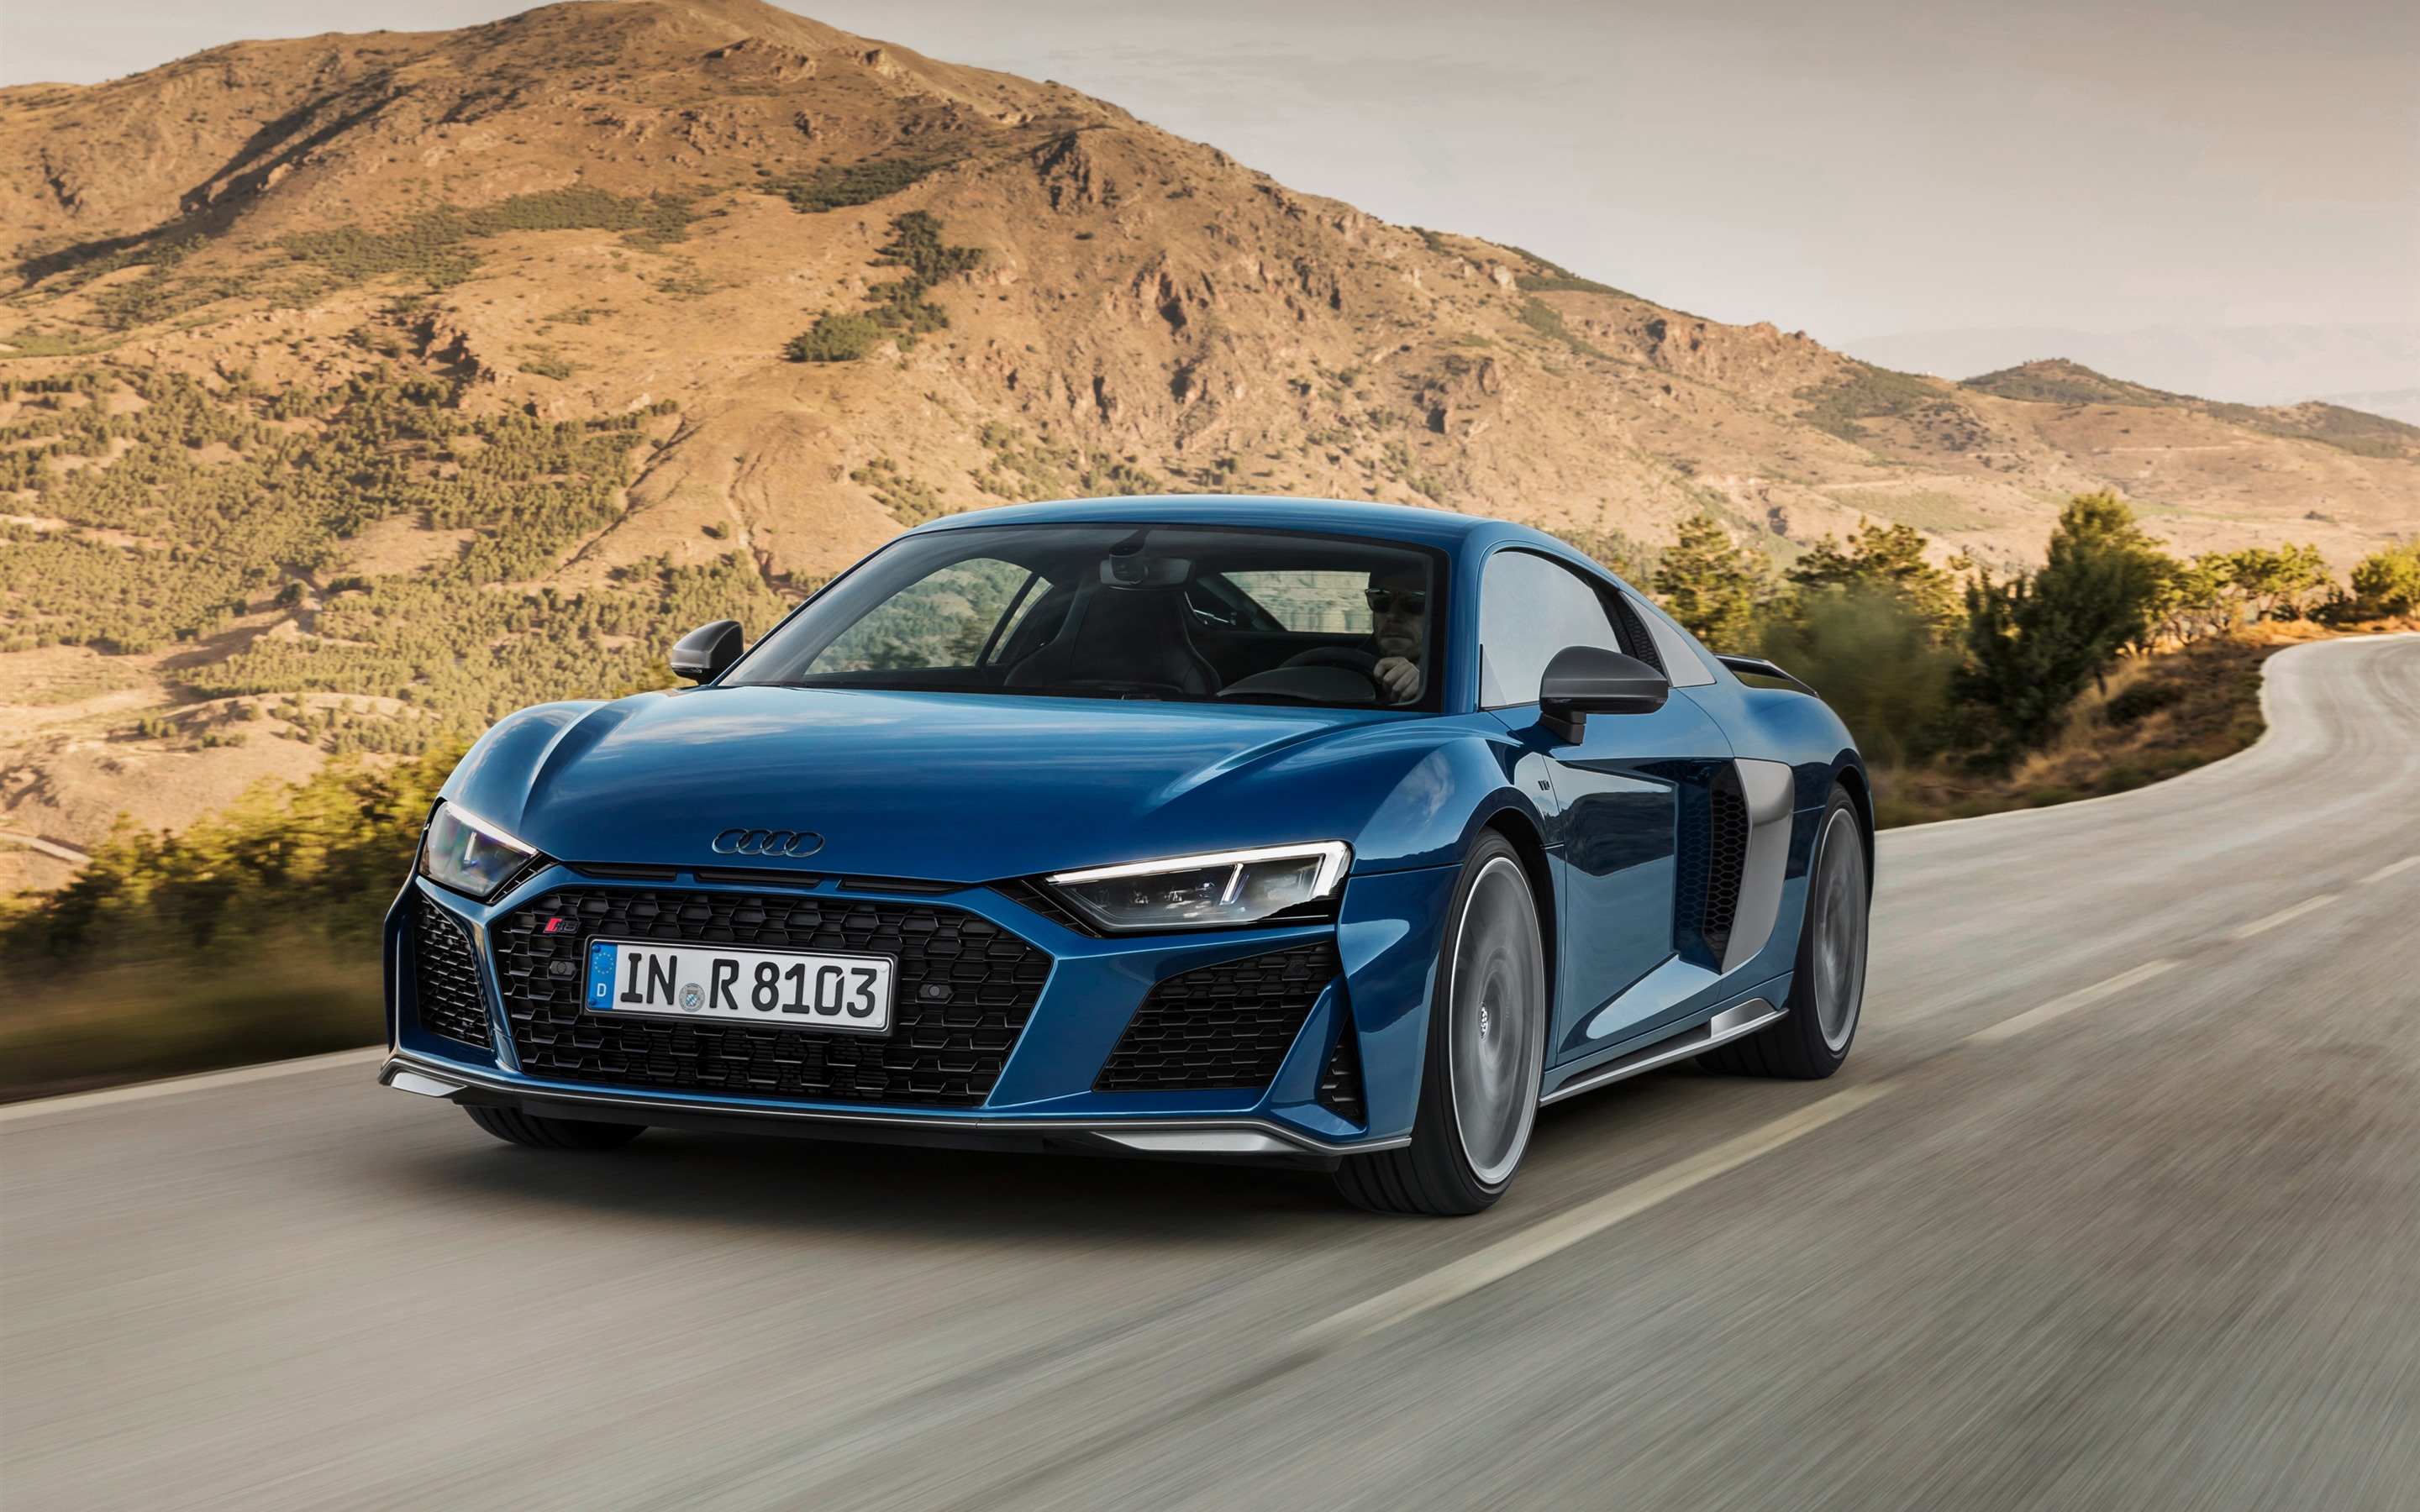 Audi R8 2019 Blue Car Speed 1242x2688 Iphone 11 Pro Xs Max Wallpaper Background Picture Image